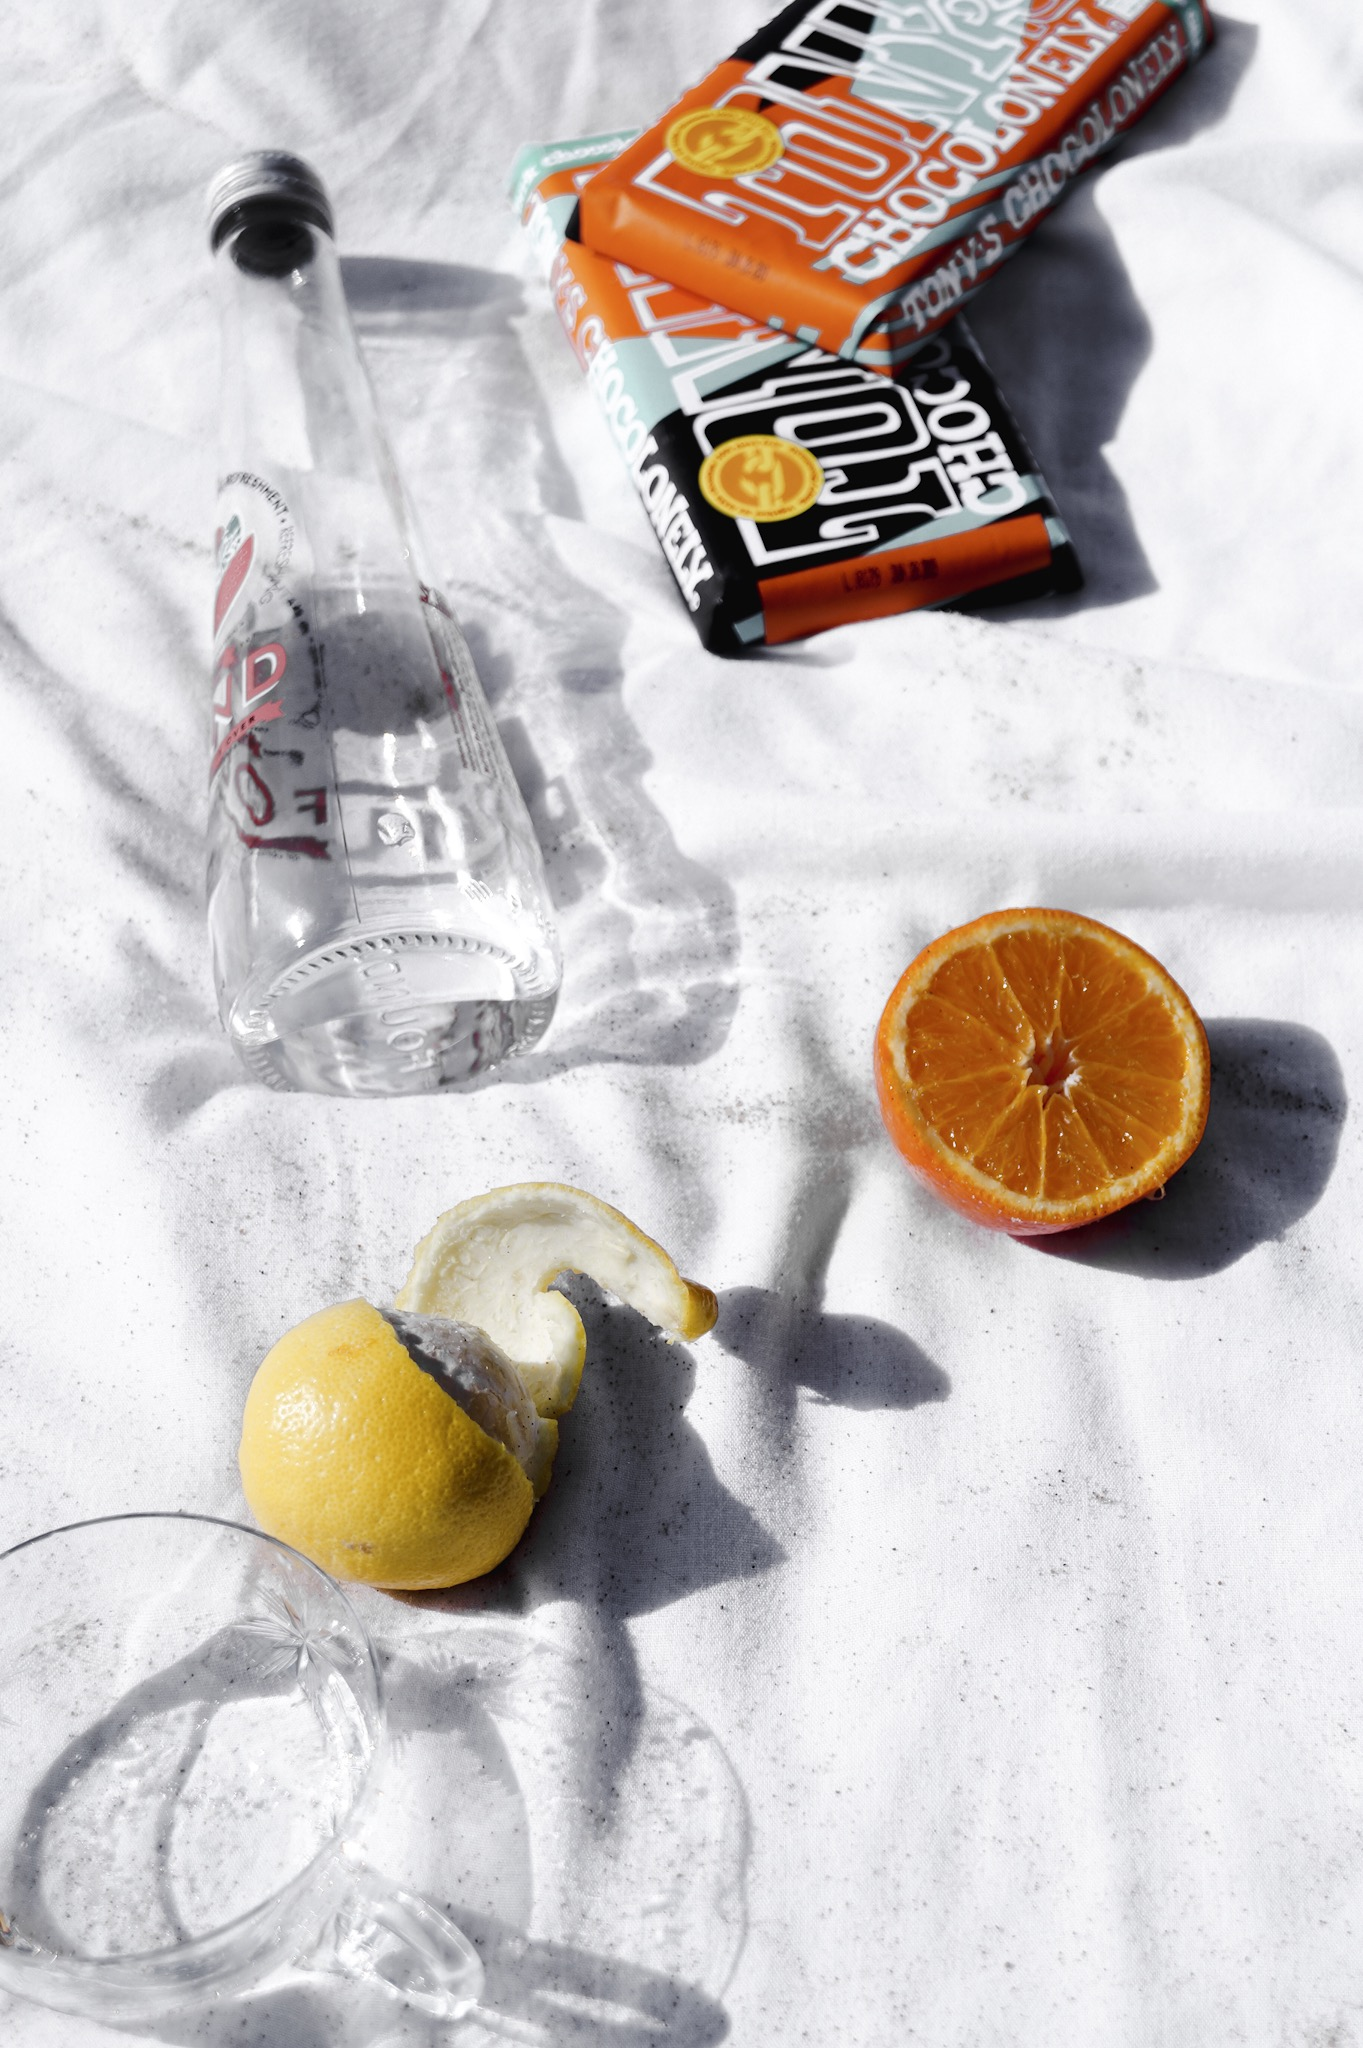 Sunshine and sand. A chocolate picnic Indiana dunes state park. Photography and styling by Mandy of A Messy Bun Kitchen.